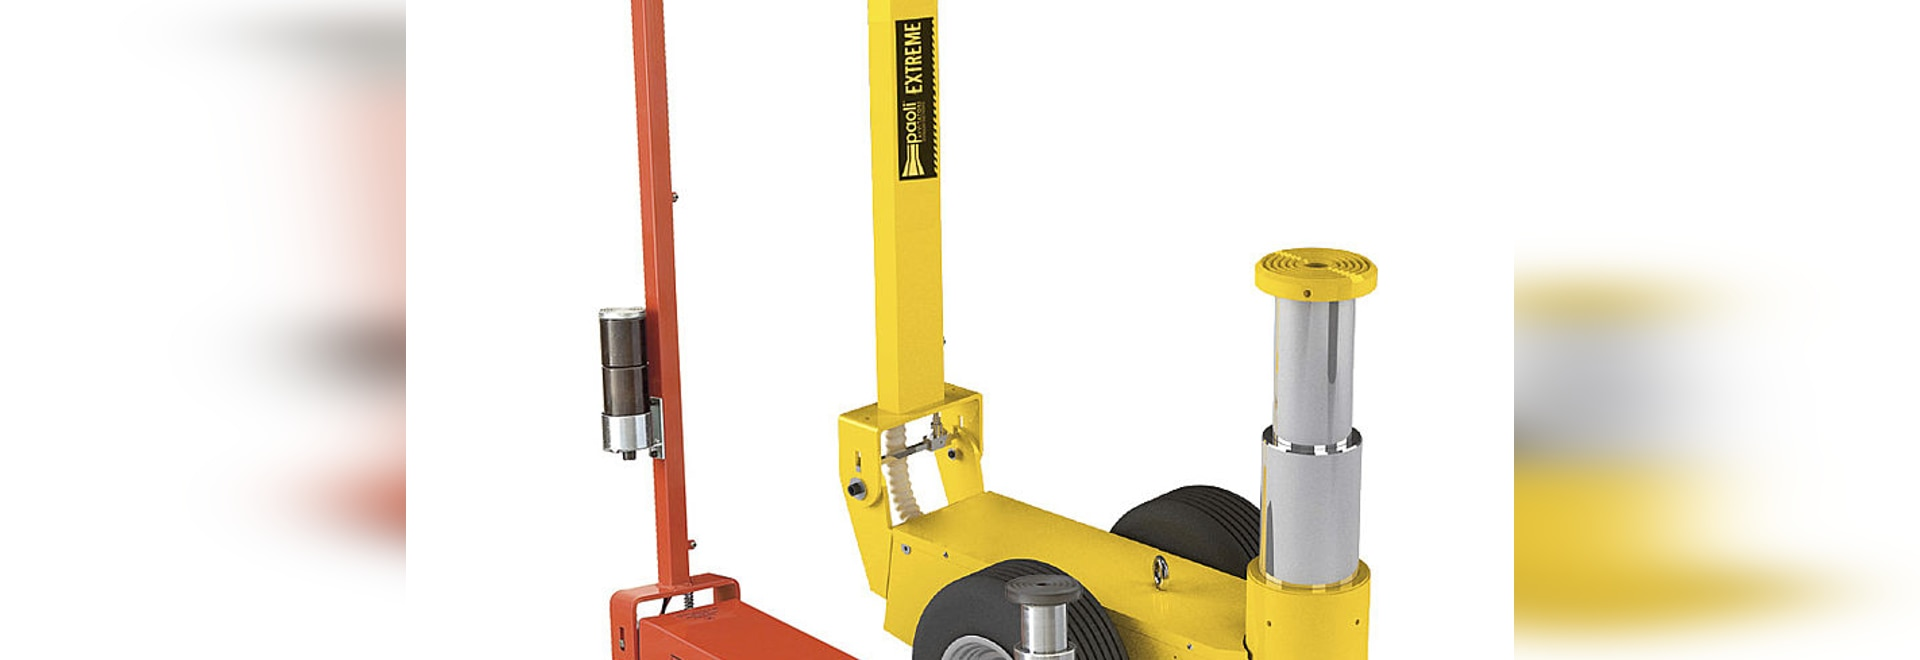 DPLIFT: AIR HYDRAULIC JACK FOR AUTOMOTIVE AND INDUSTRY !